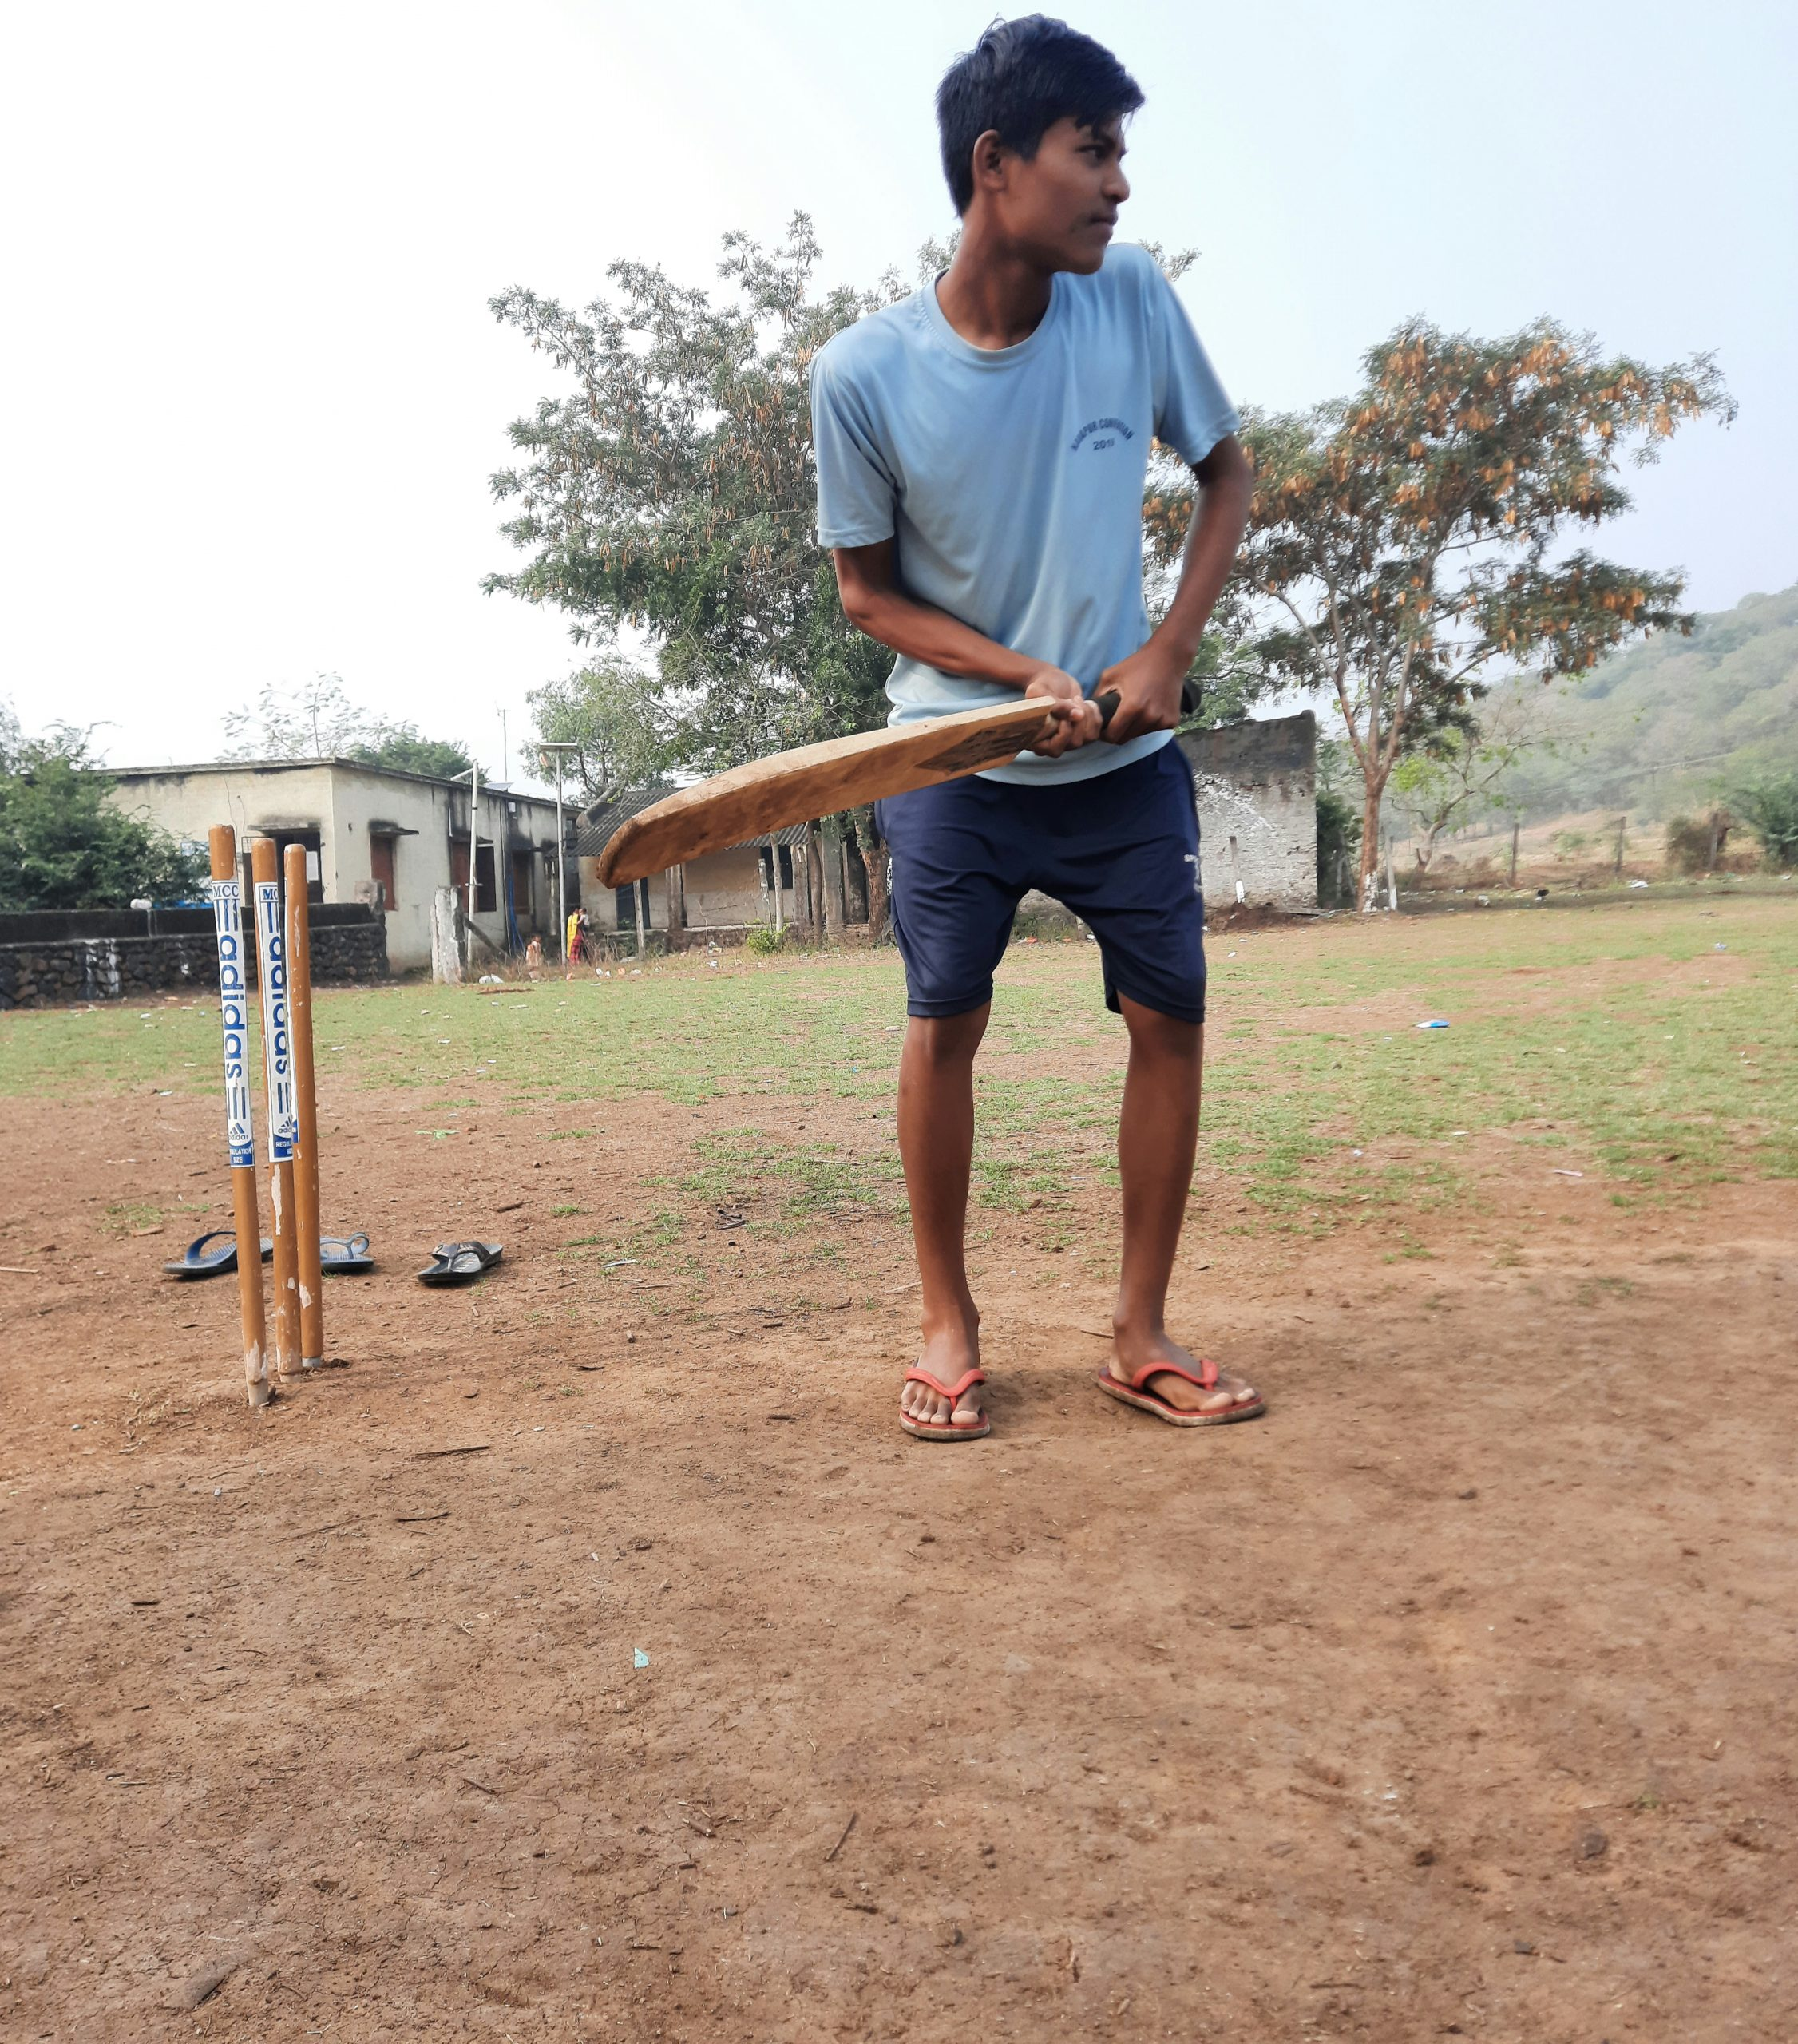 man batting